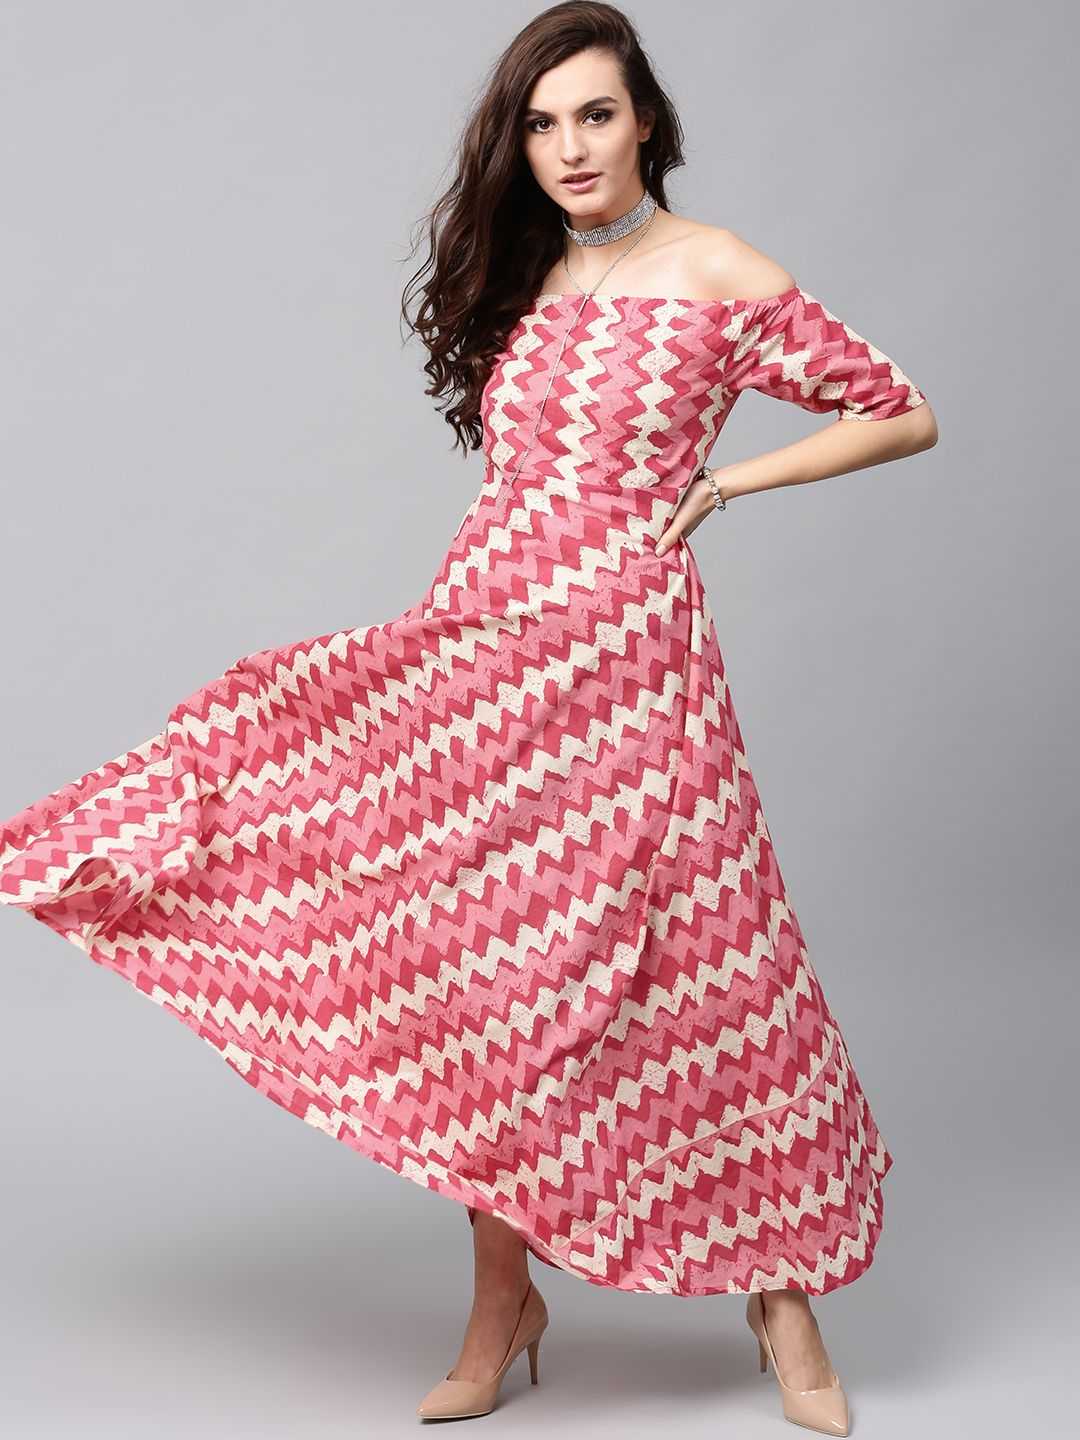 c3210e1330f Buy AKS Women Pink   Cream Coloured Printed Off Shoulder Maxi Dress - -  Apparel for Women from AKS at Rs. 849